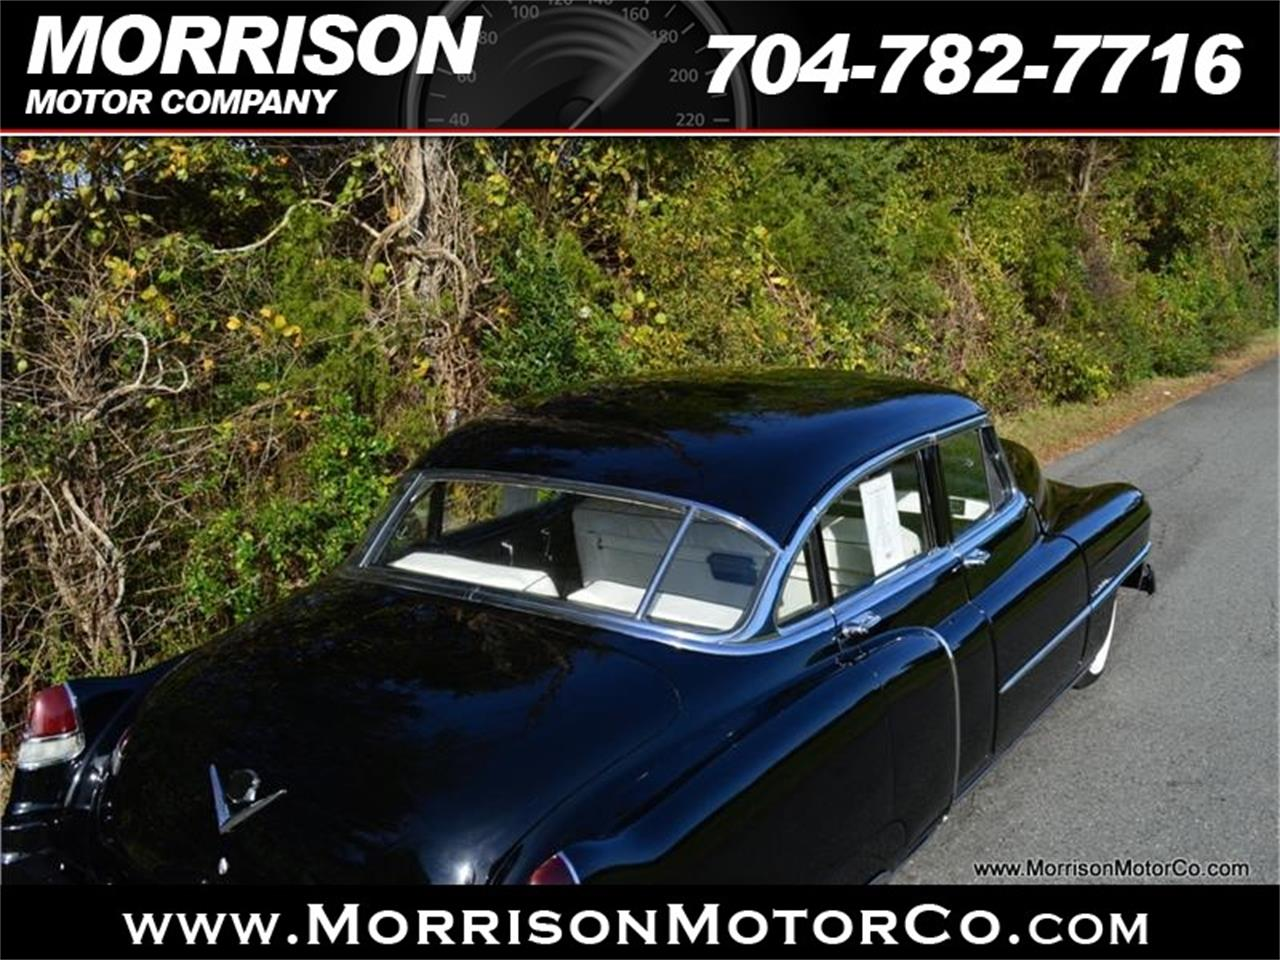 Large Picture of '51 Cadillac DeVille - $19,900.00 Offered by Morrison Motor Company - MBTG